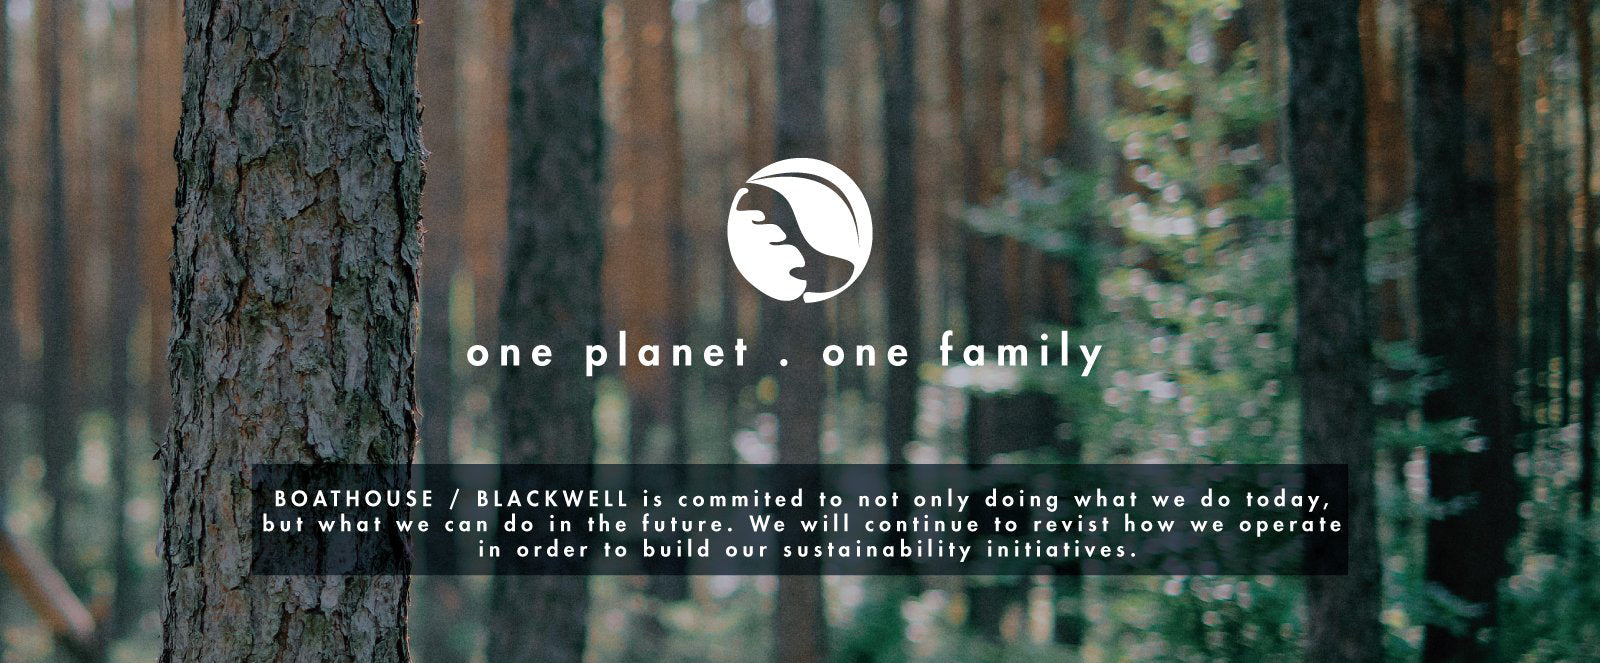 One planet . one family  - BOATHOUSE / BLACKWELL is committed to not only doing what we do today, but what we can do in the future. We will continue to revisit how we operate in order to build our sustainability initiatives.